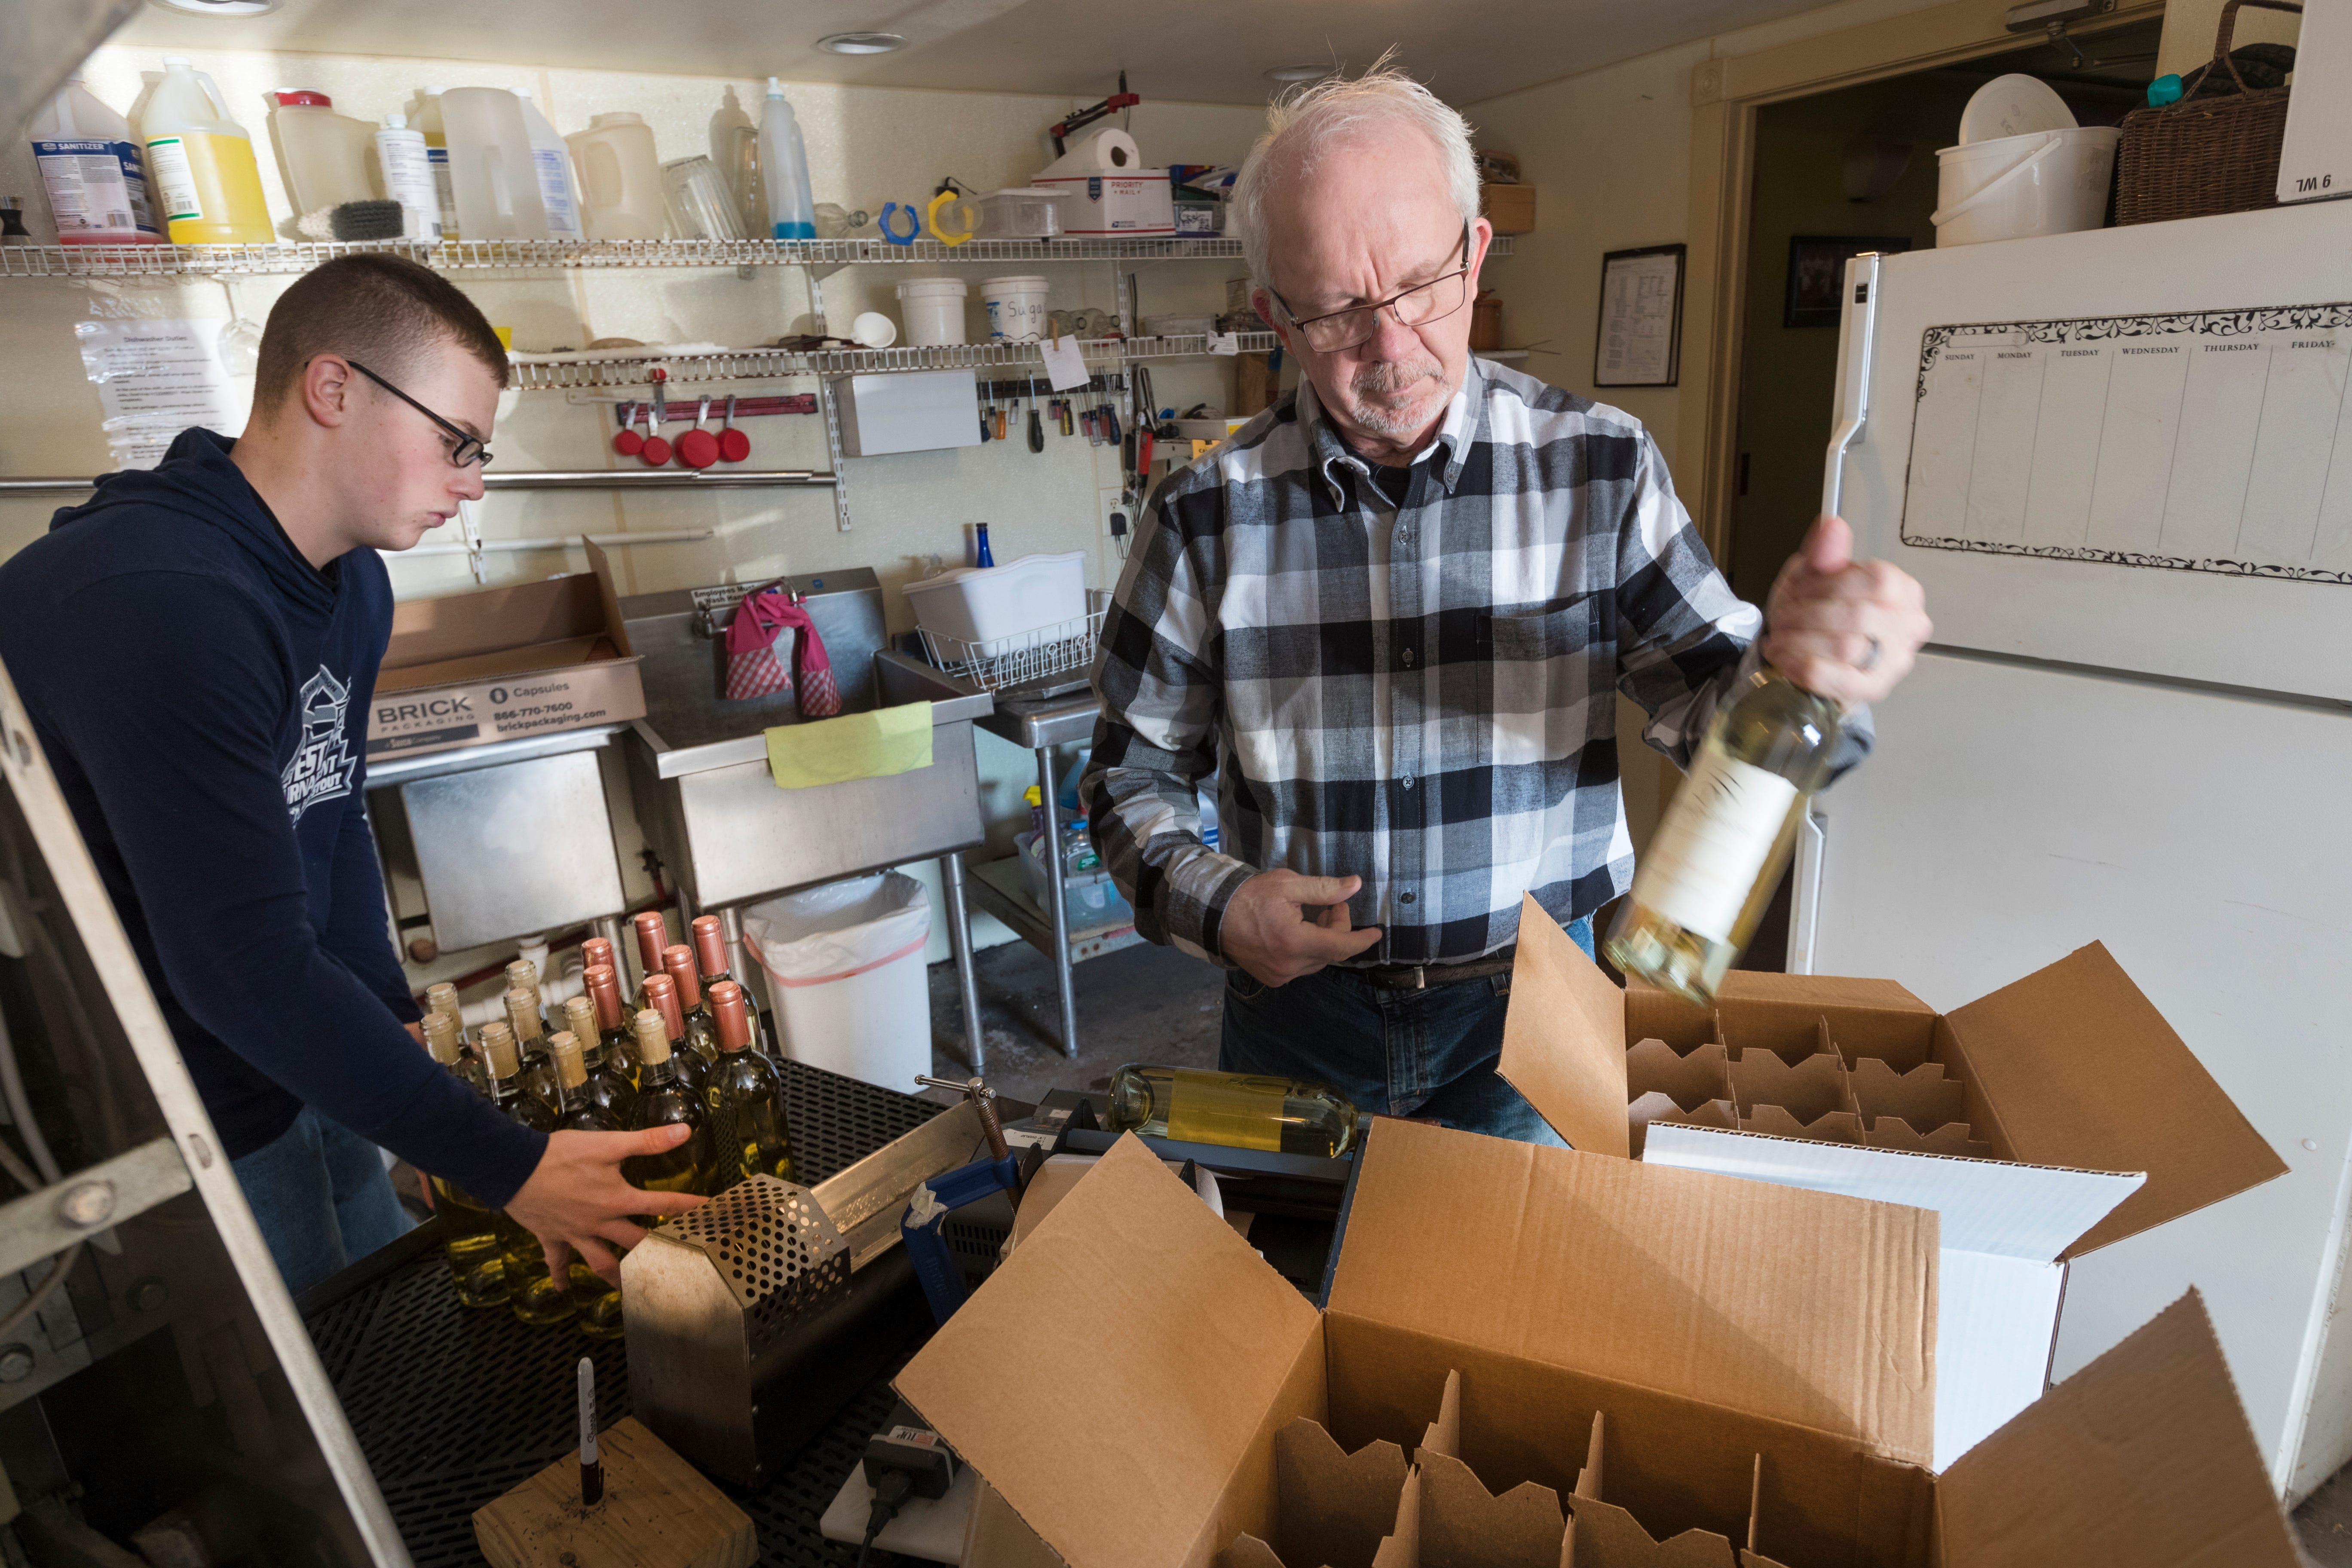 Tom Rohland fills cases of wine with the help of Isaac Mathison, left, at Munson Bridge Winery in Withee. Former dairy farmers Tom and Sheri Rohland own the winery.